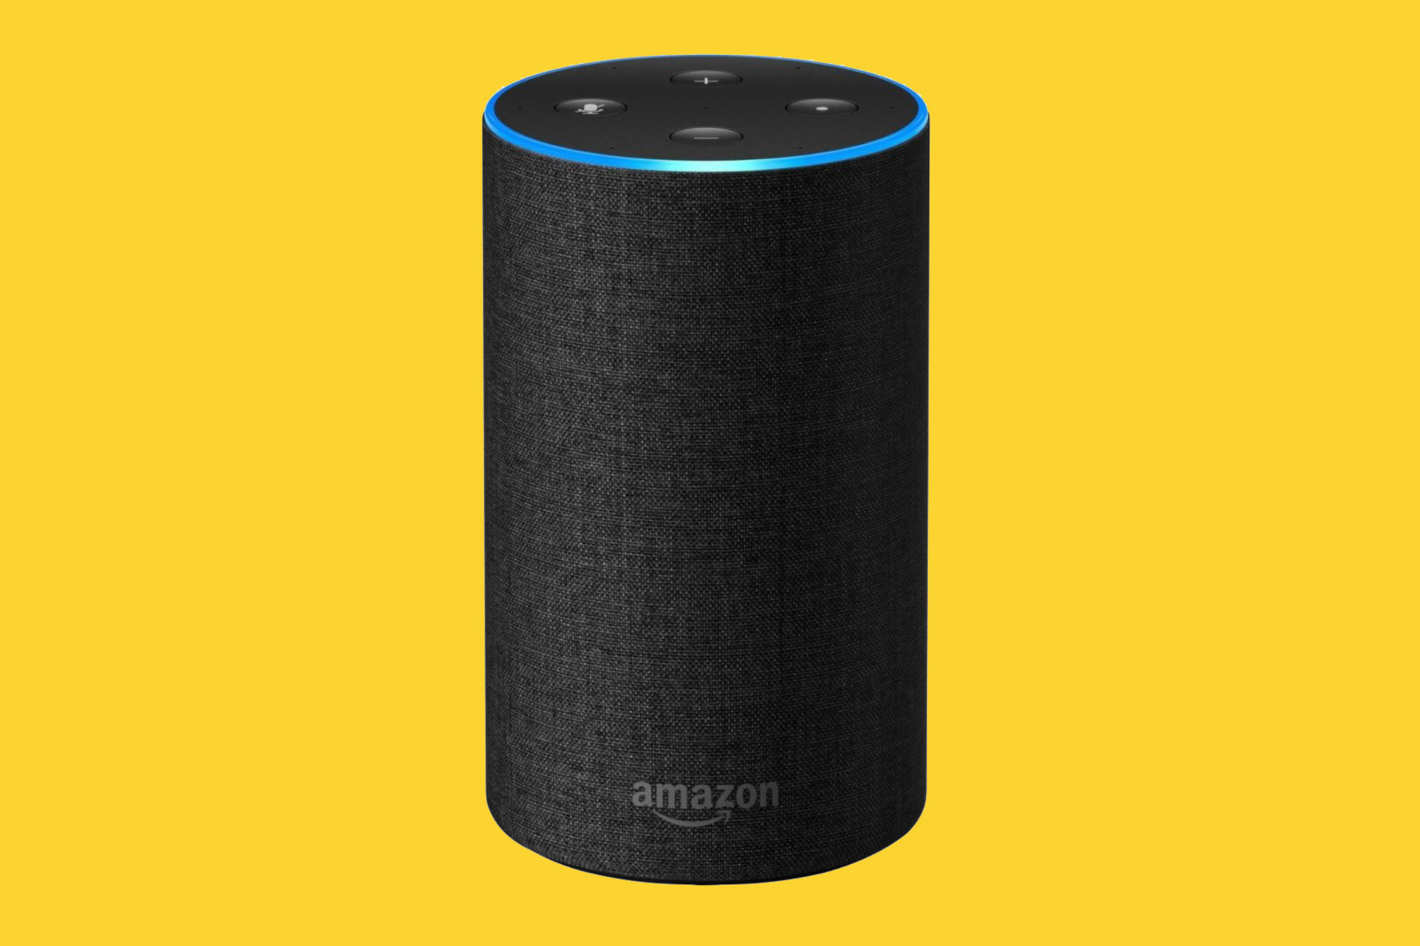 An Amazon Echo.